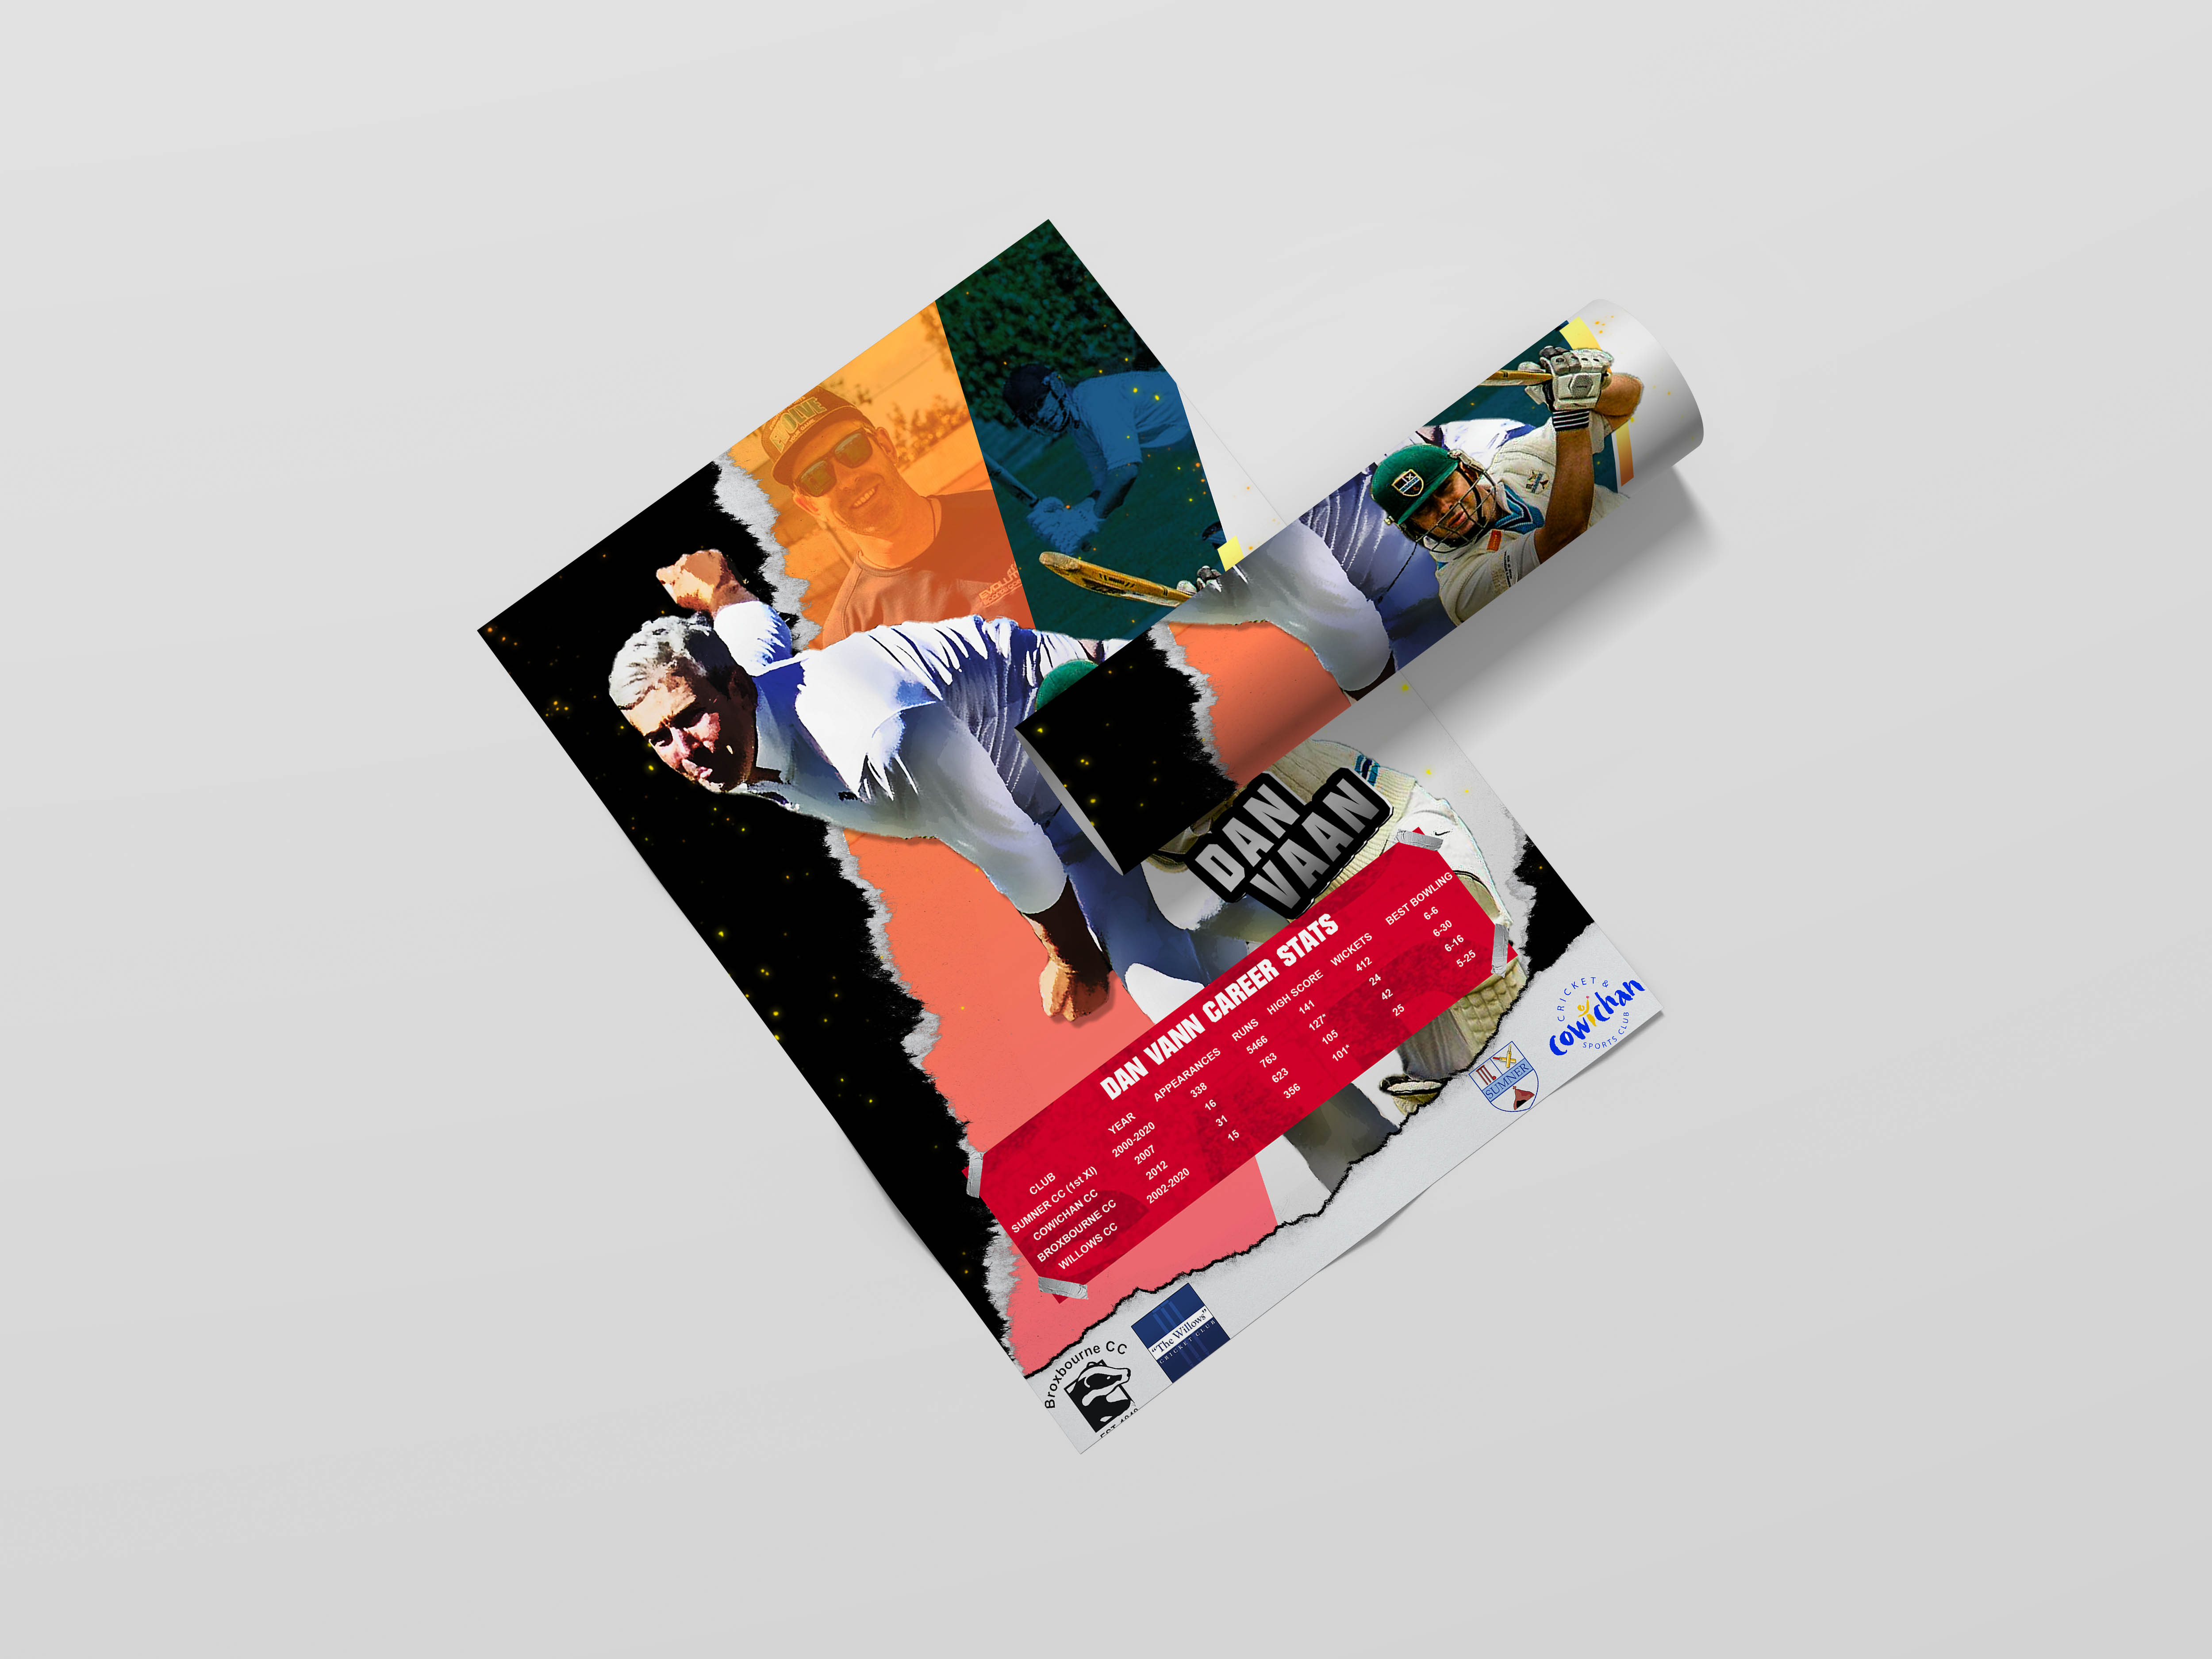 Get amazing sports flyers and posters from me within 12 hours